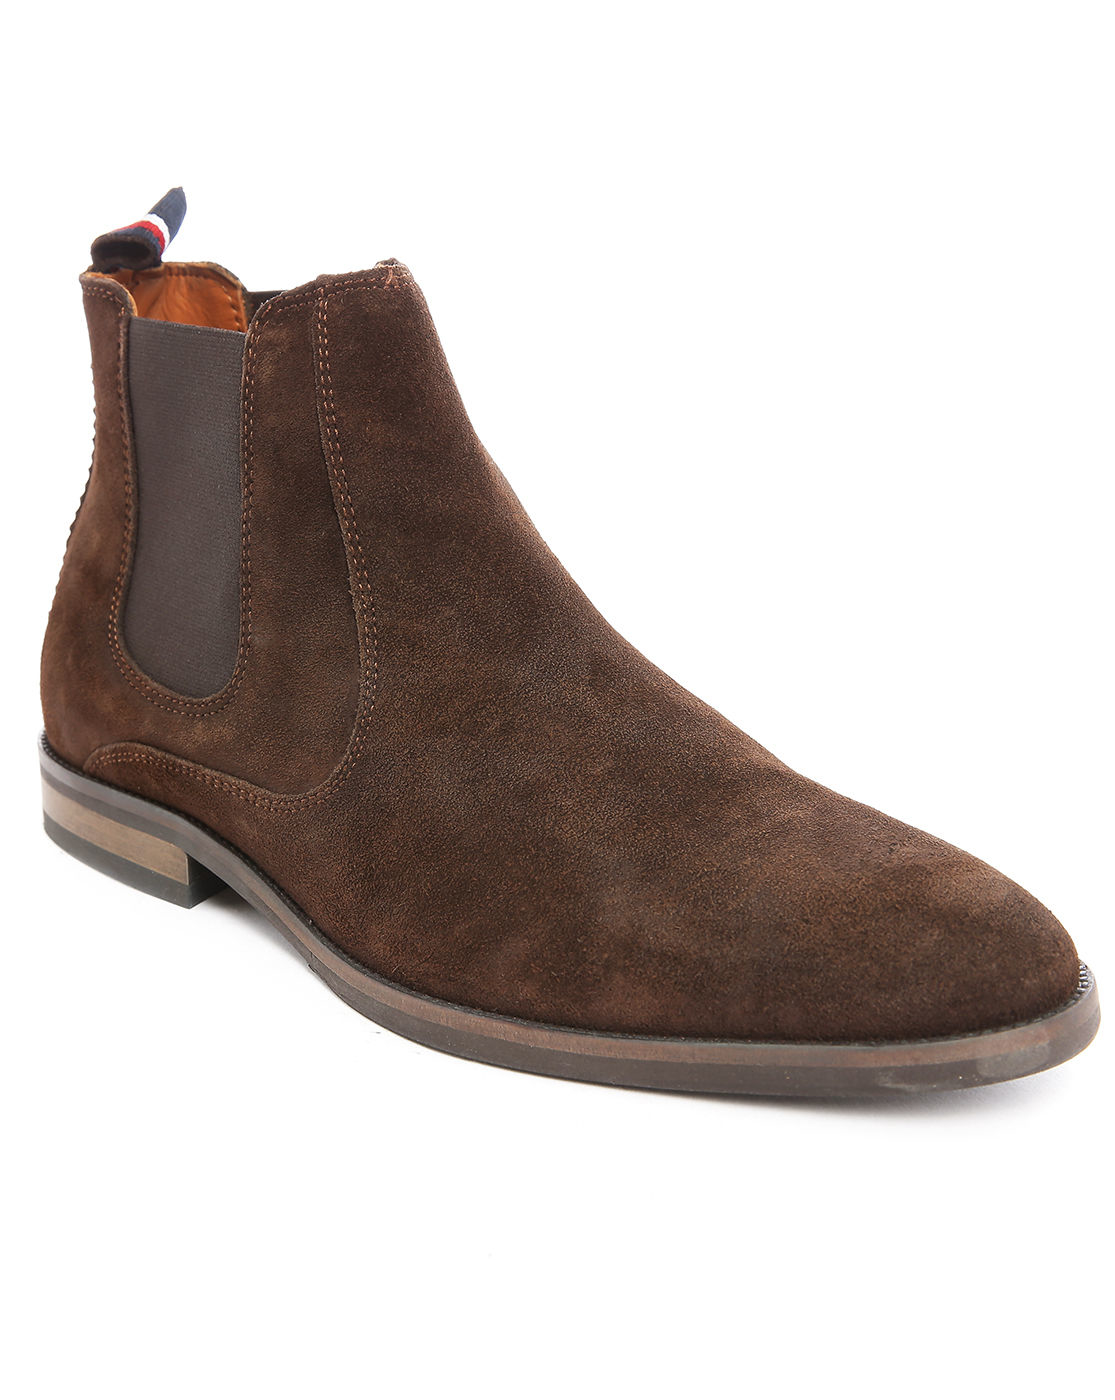 tommy hilfiger dalton 18b suede chelsea boots in brown for men lyst. Black Bedroom Furniture Sets. Home Design Ideas